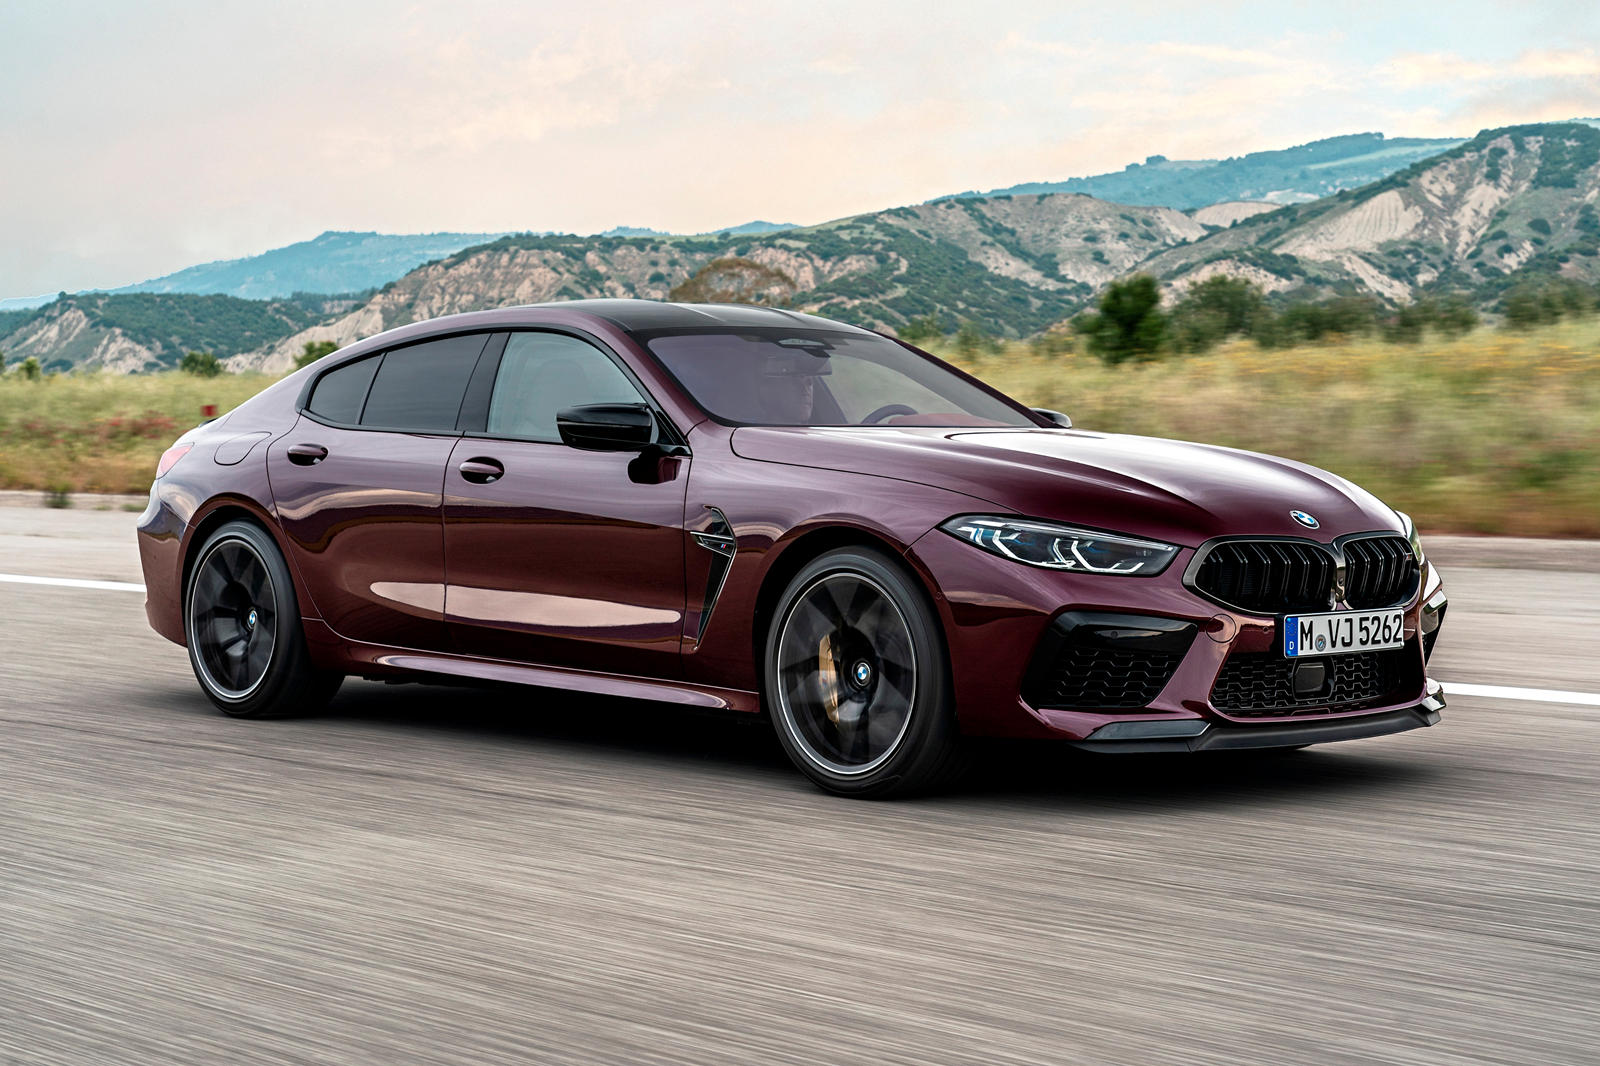 2020 Bmw M8 Gran Coupe Review Trims Specs Price New Interior Features Exterior Design And Specifications Carbuzz